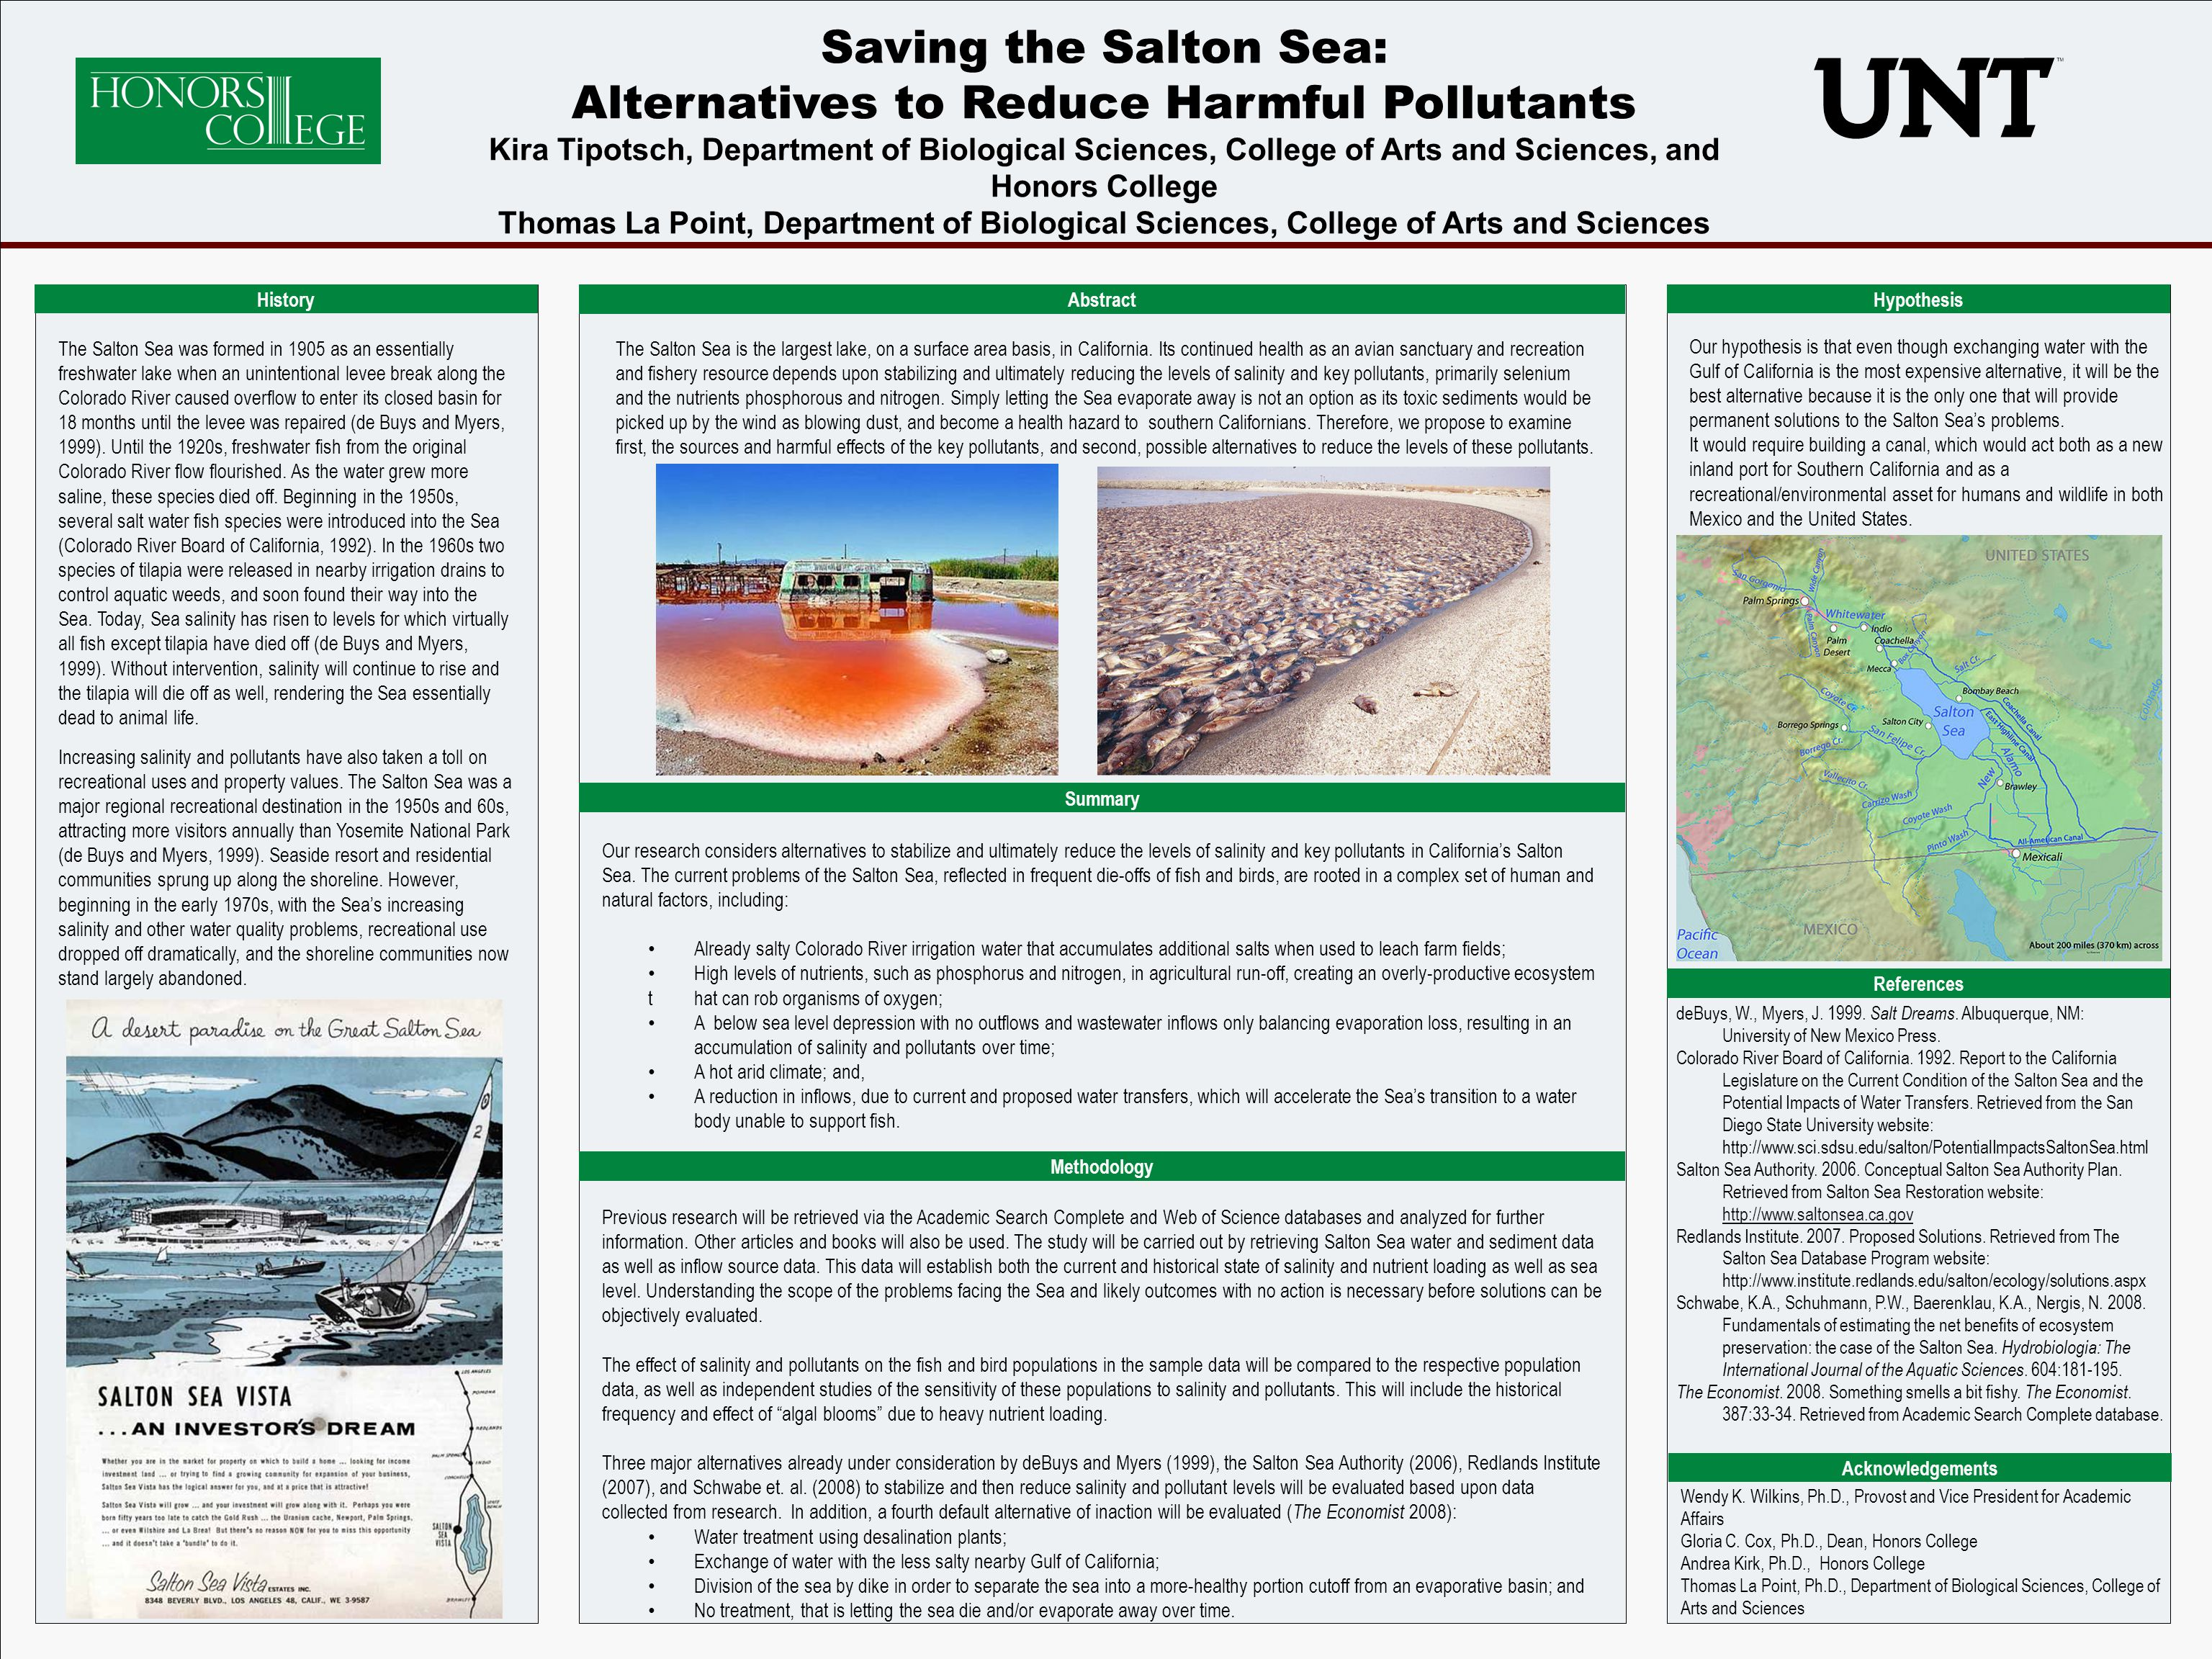 POSTER TEMPLATE BY: www.PosterPresentations.com Saving the Salton Sea: Alternatives to Reduce Harmful Pollutants Kira Tipotsch, Department of Biological Sciences, College of Arts and Sciences, and Honors College Thomas La Point, Department of Biological Sciences, College of Arts and Sciences History The Salton Sea was formed in 1905 as an essentially freshwater lake when an unintentional levee break along the Colorado River caused overflow to enter its closed basin for 18 months until the levee was repaired (de Buys and Myers, 1999).